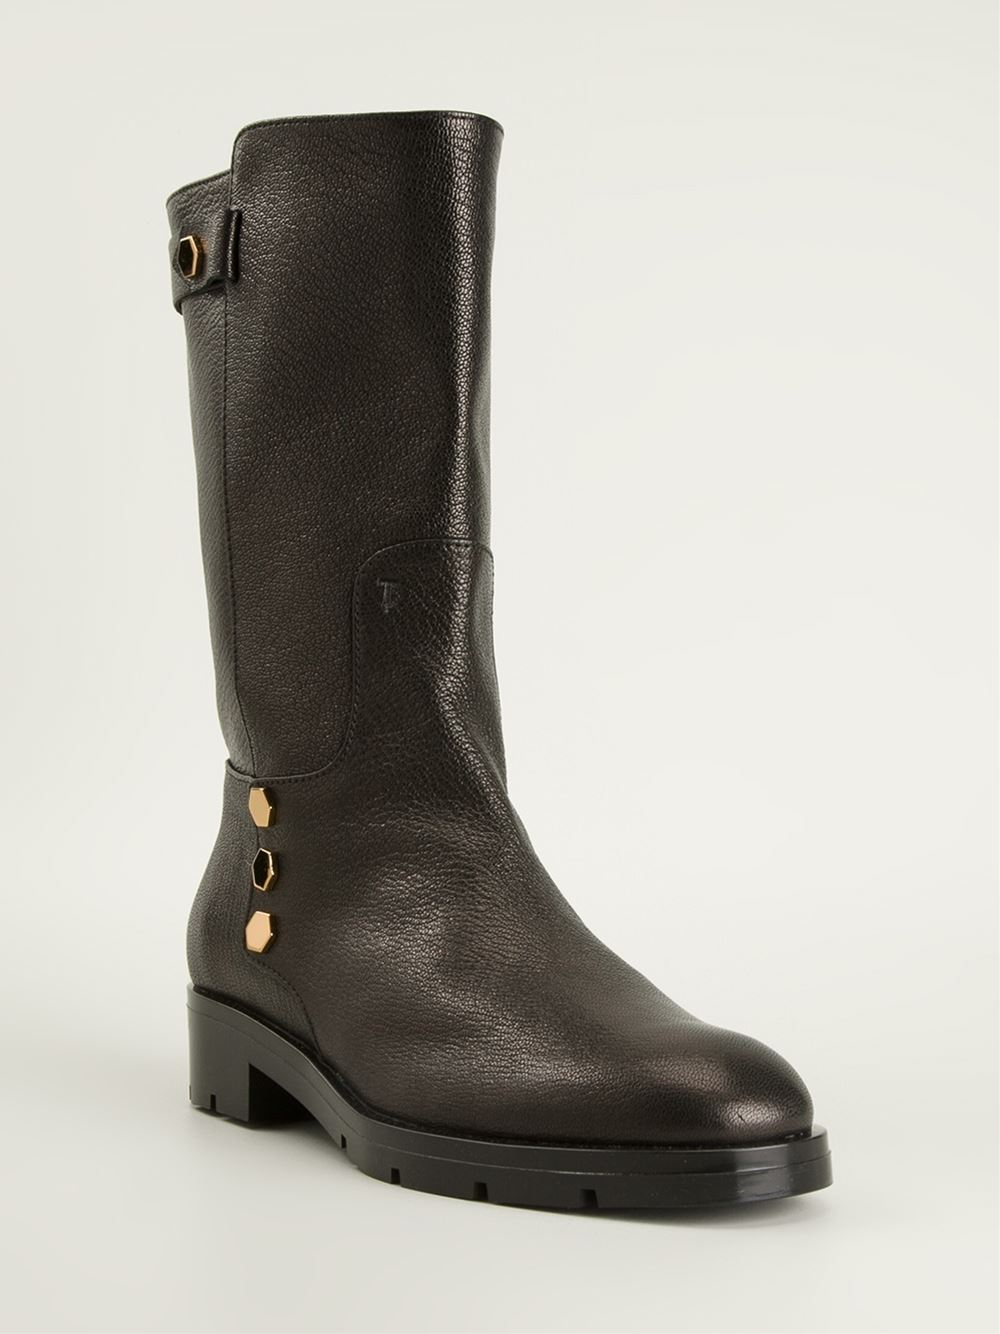 sale Manchester Tod's Suede Mid-Calf Boots for sale 2014 best seller outlet shop classic online wUkcg